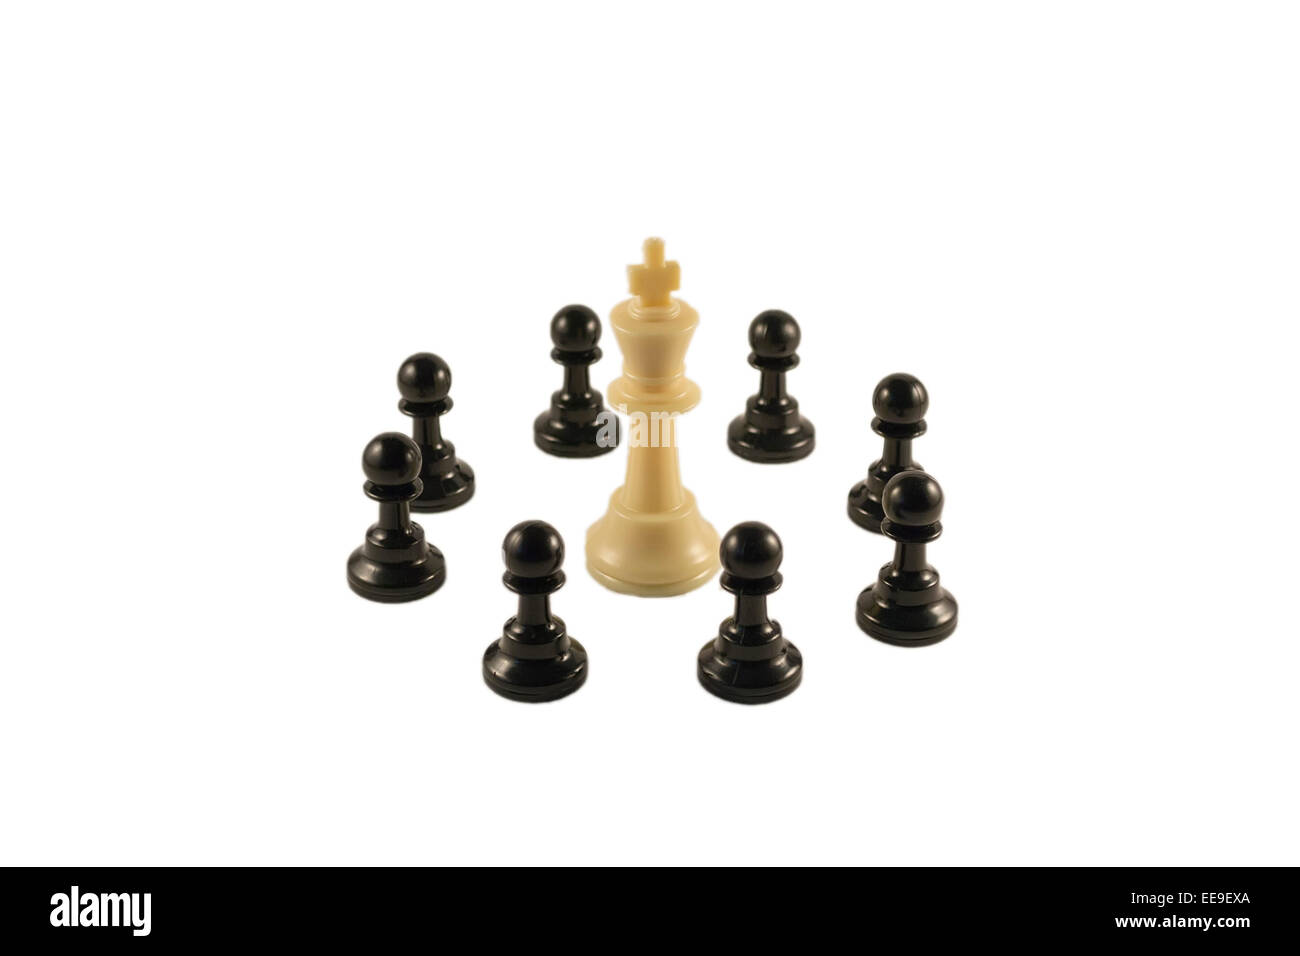 White king surrounded by the black pawns in a circle formation - Stock Image